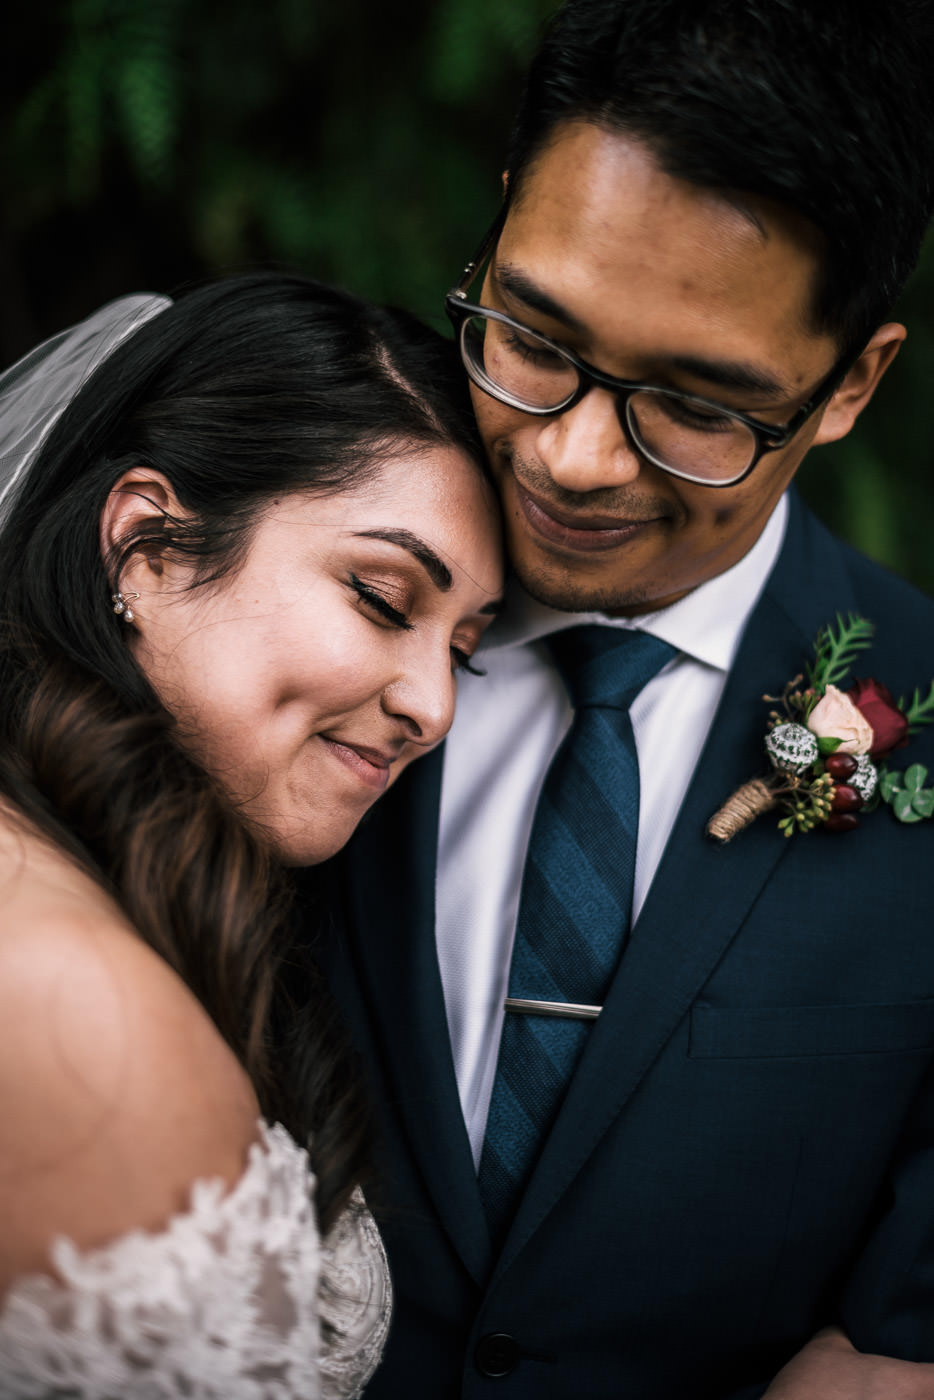 Romantic wedding photography in California. Taken at Knollwood Country Club in Granada Hills.